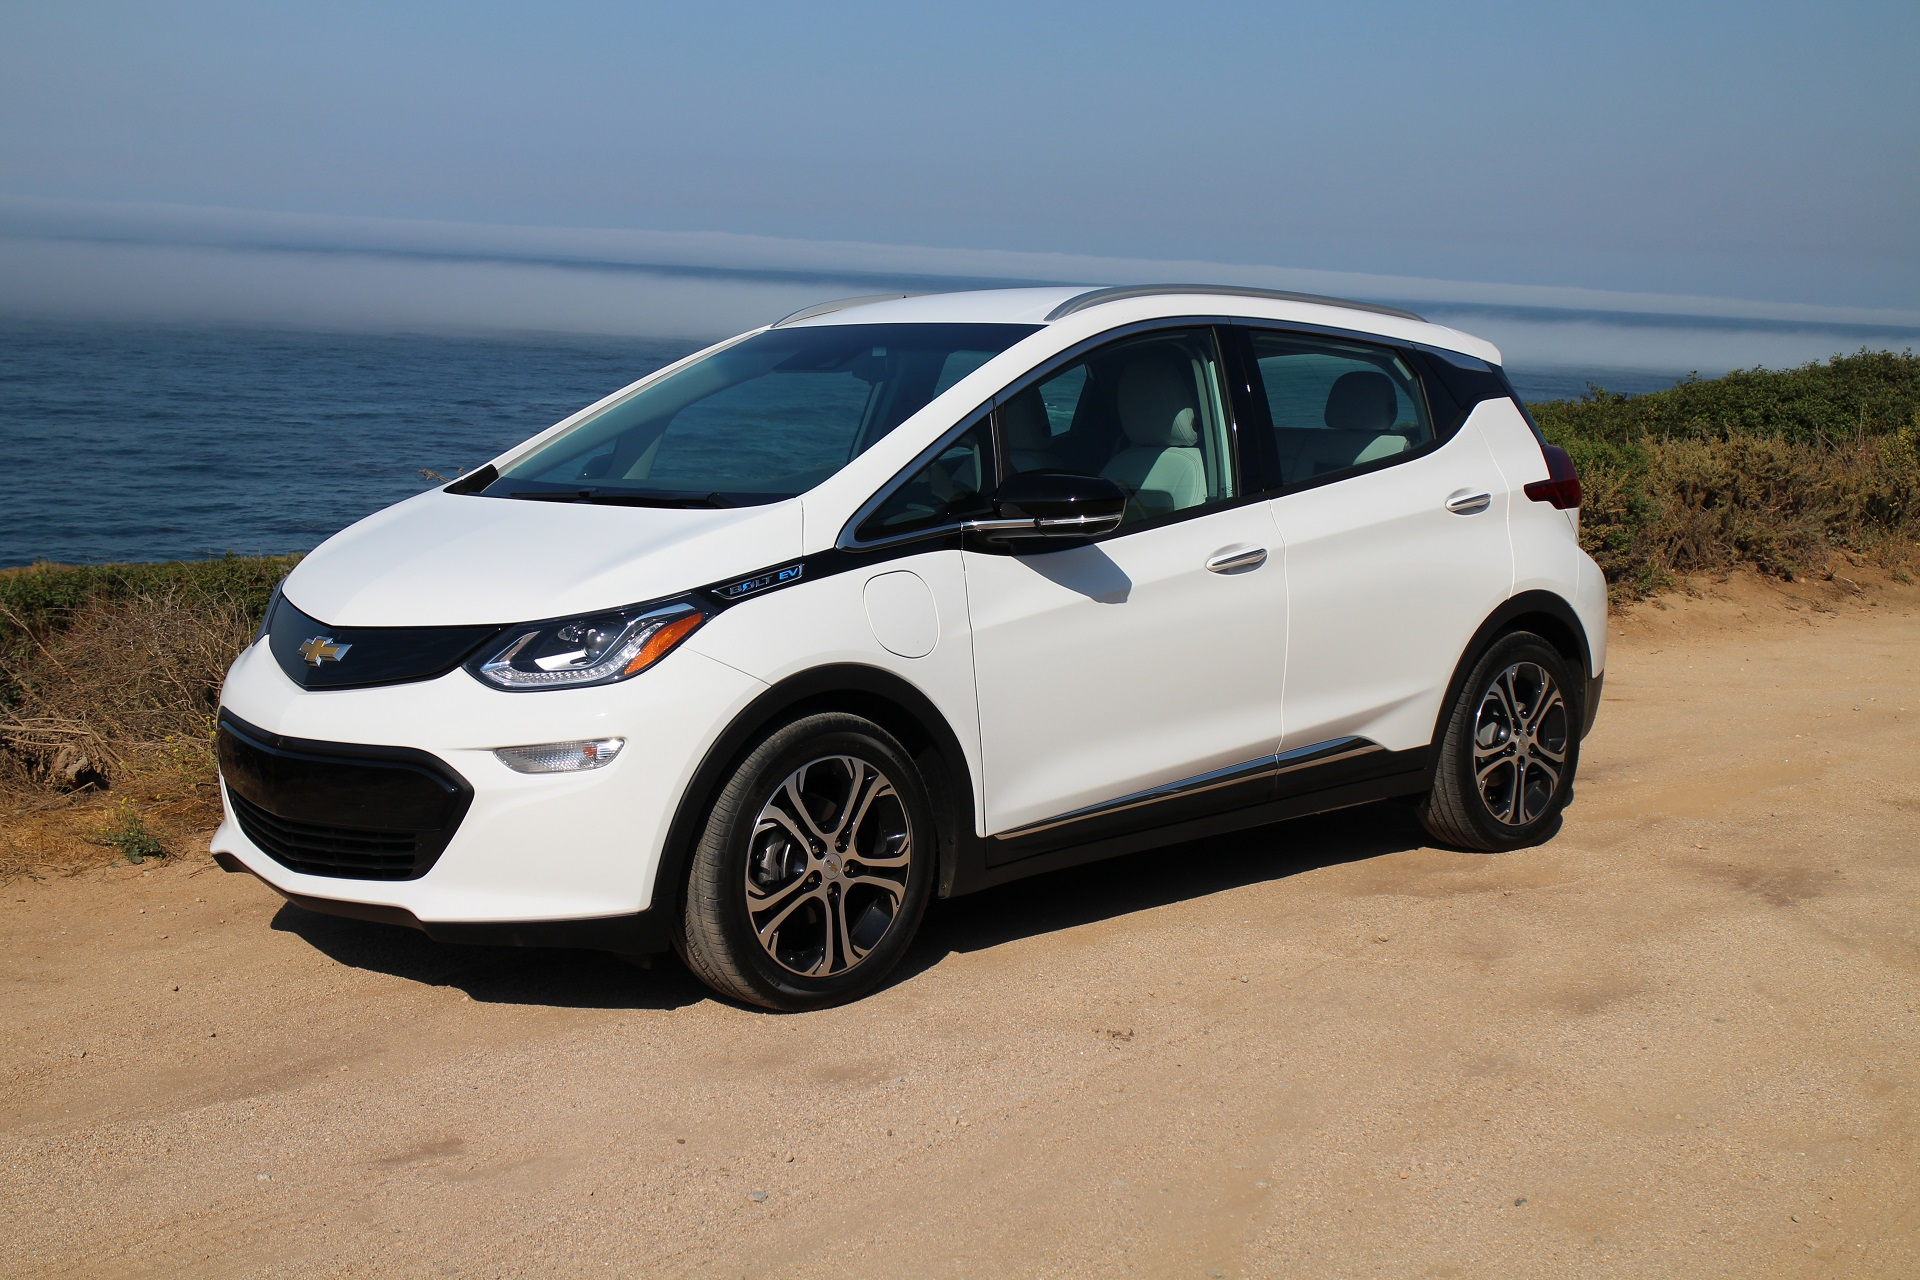 2017 Chevy Bolt Ev Battery May Fail Due To Faulty Cell New Pack Needed For A Few Gm Electric Cars Updated